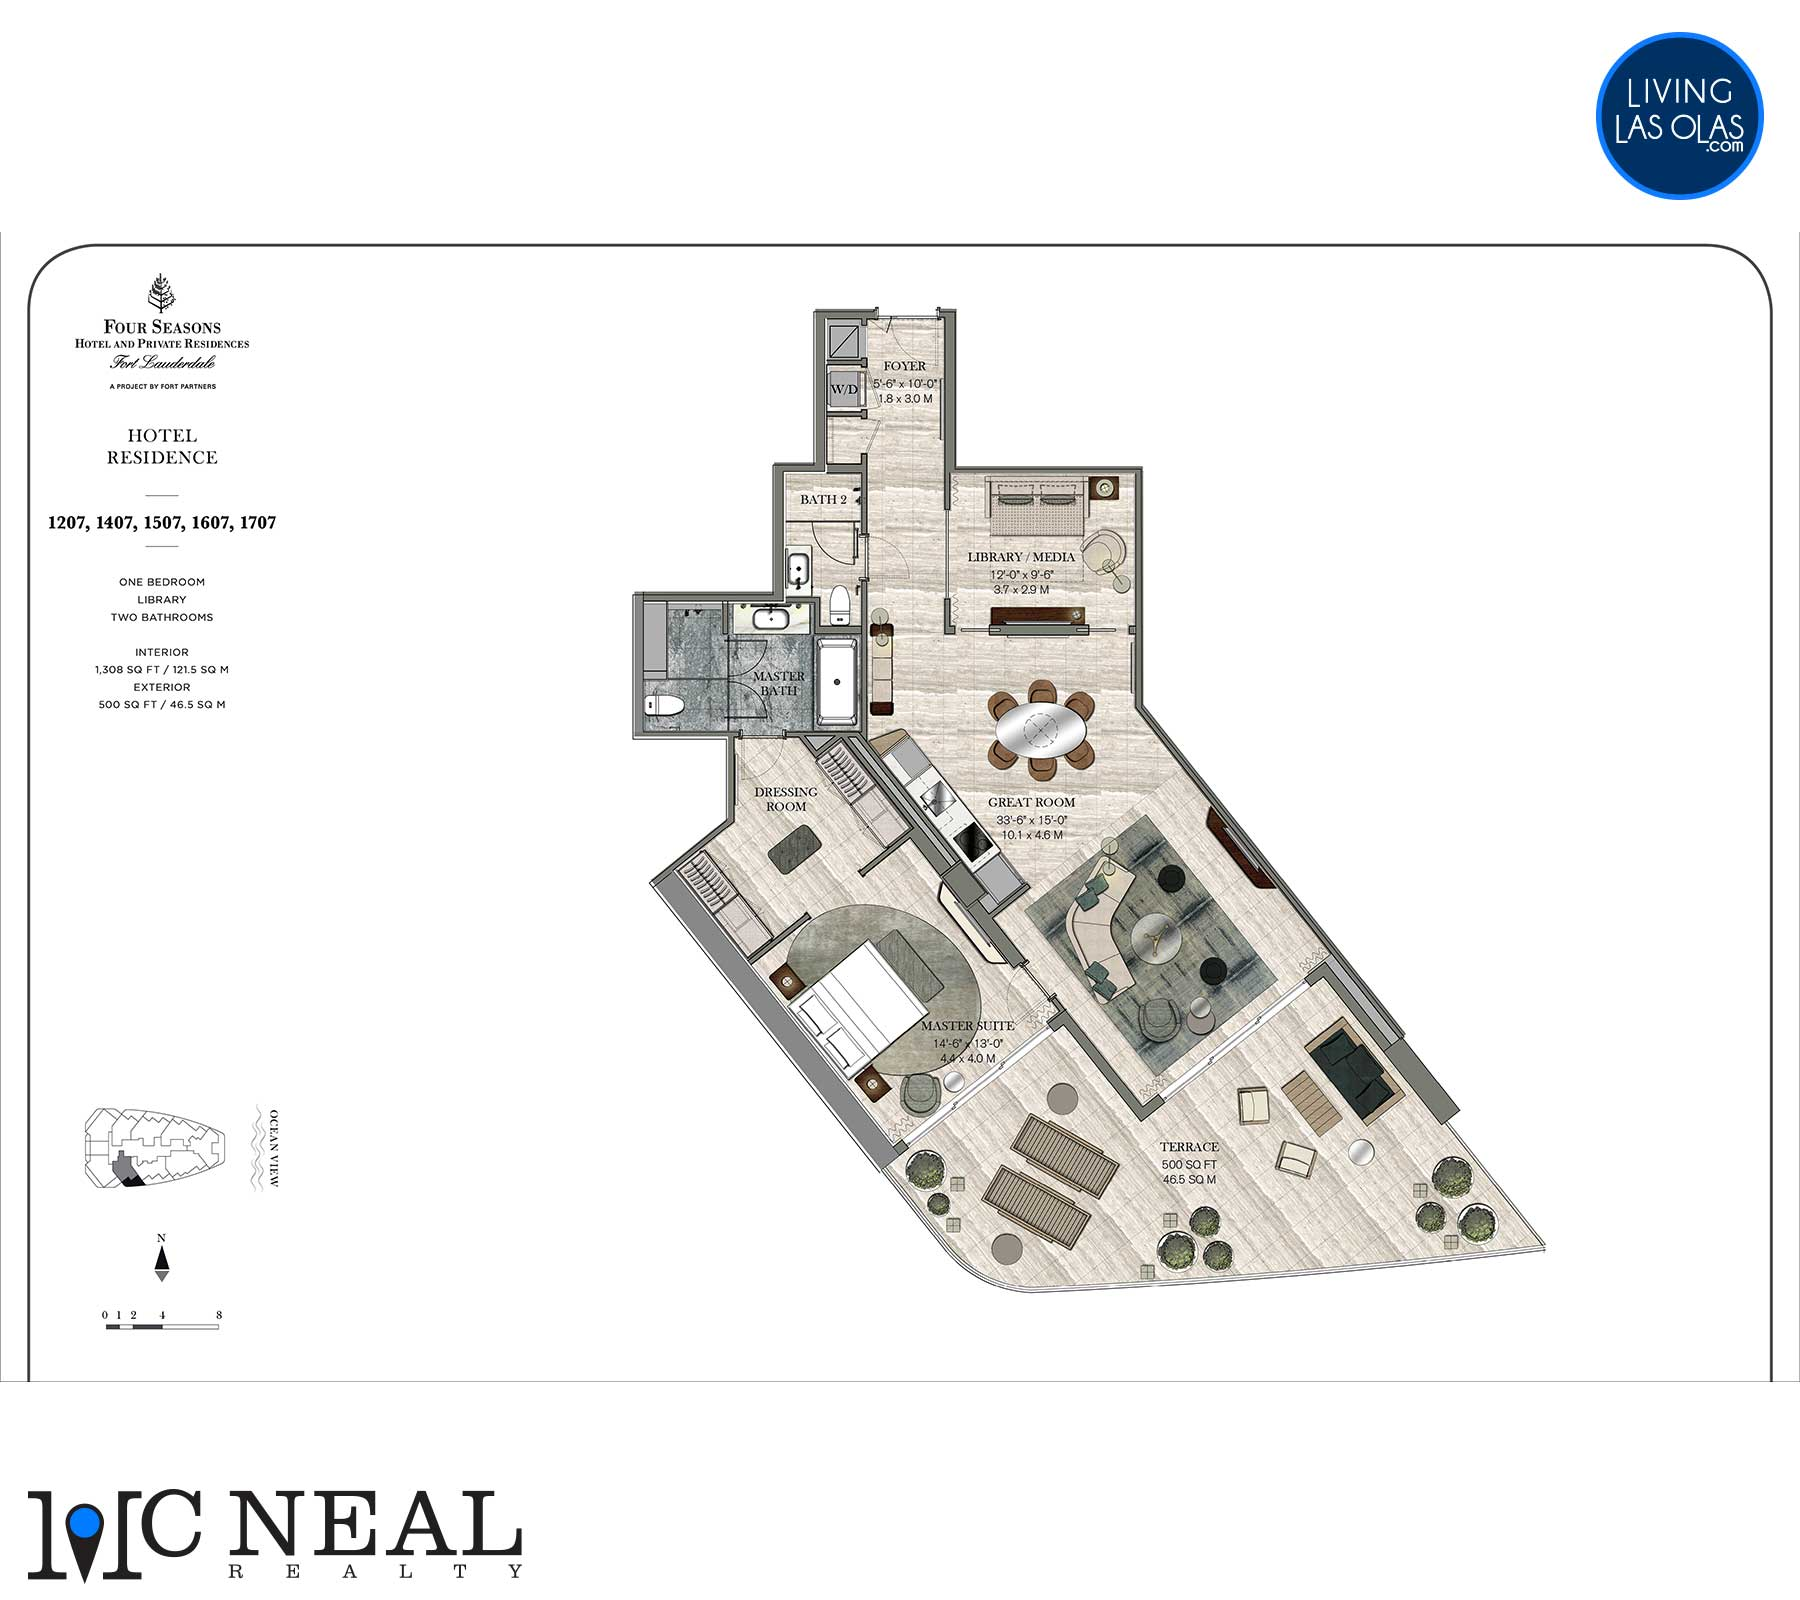 Four Seasons Hotel Residences Floor Plan 1207-1707